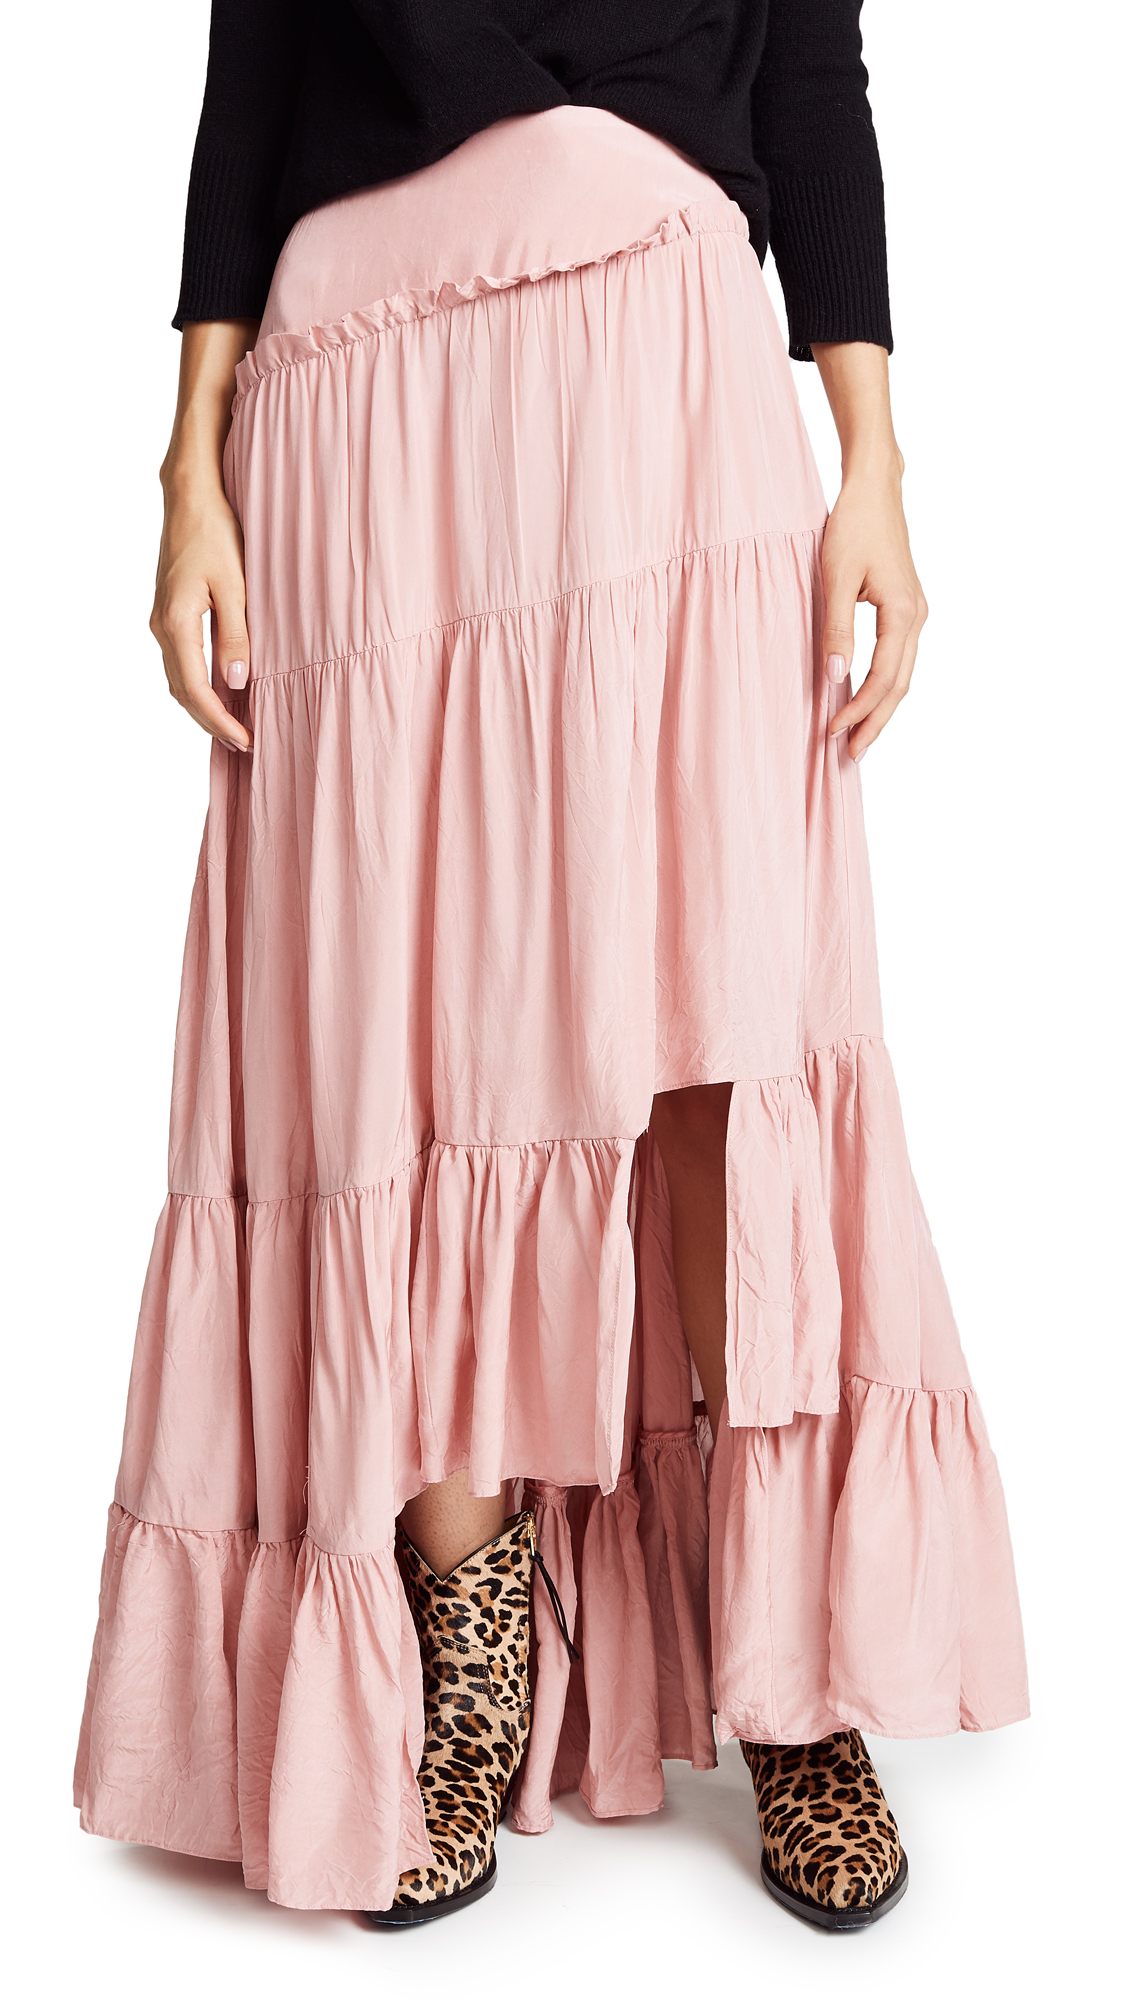 3.1 Phillip Lim Full Gathered Skirt In Dusty Pink